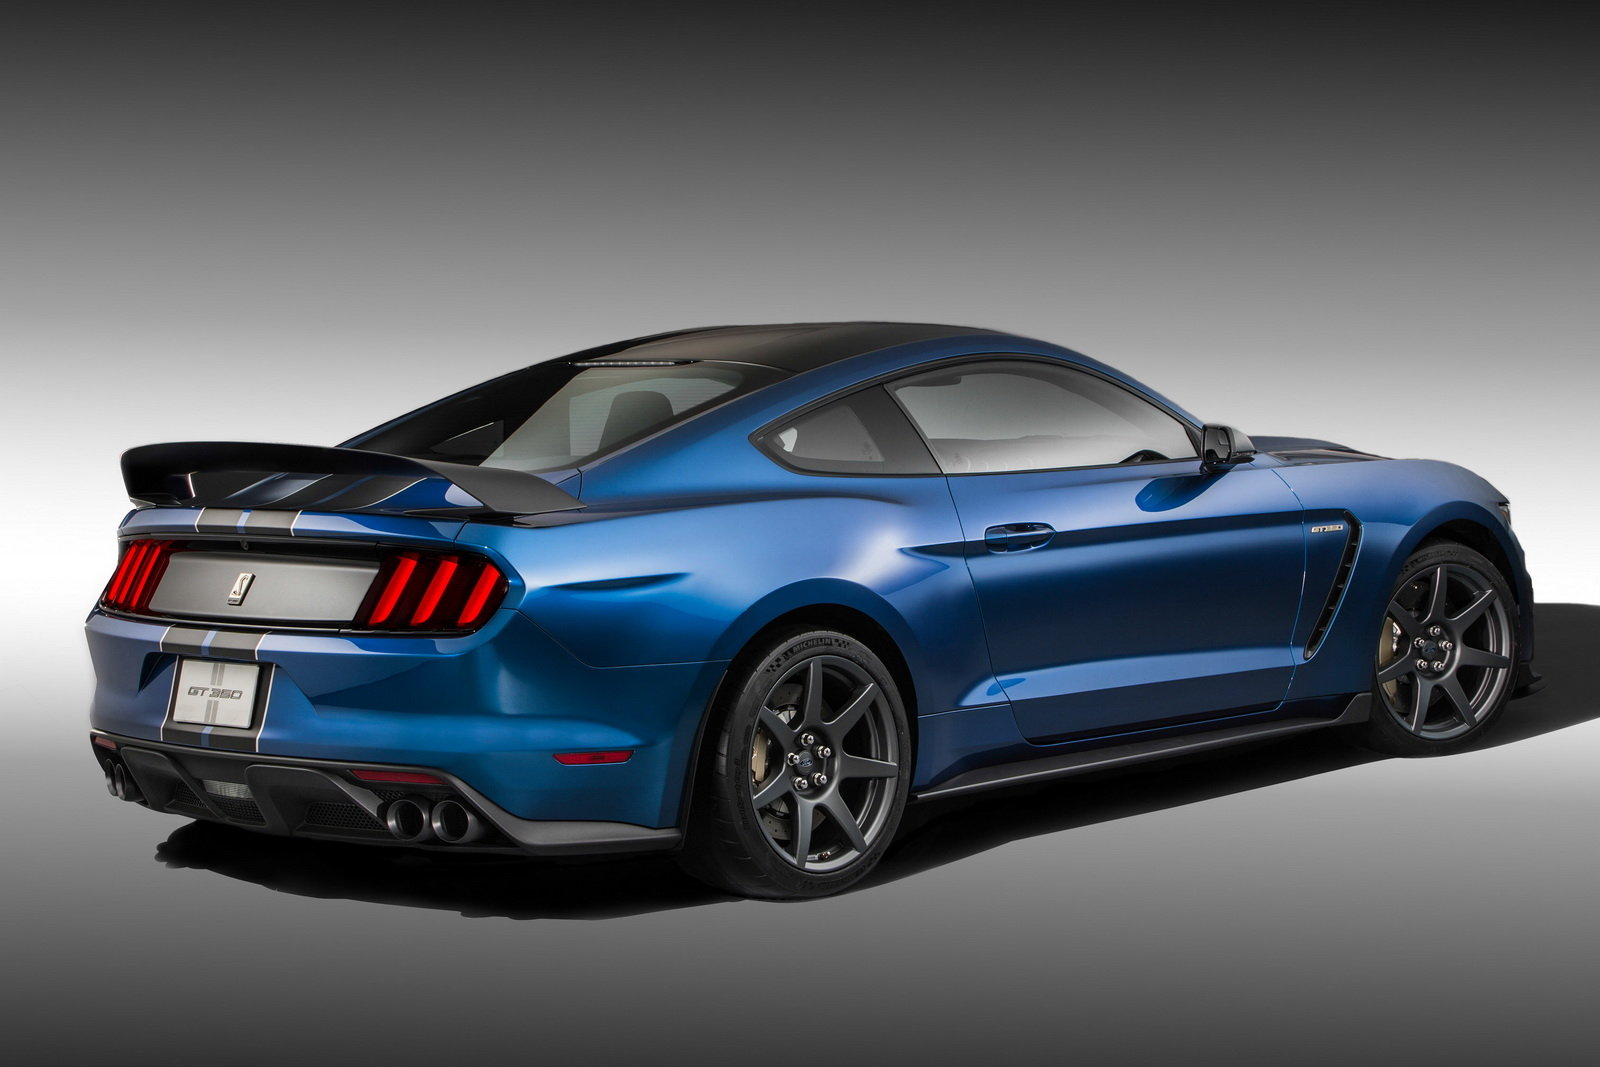 2016 Ford Mustang Shelby Gt350r Rear Side Profile (Photo 38 of 47)